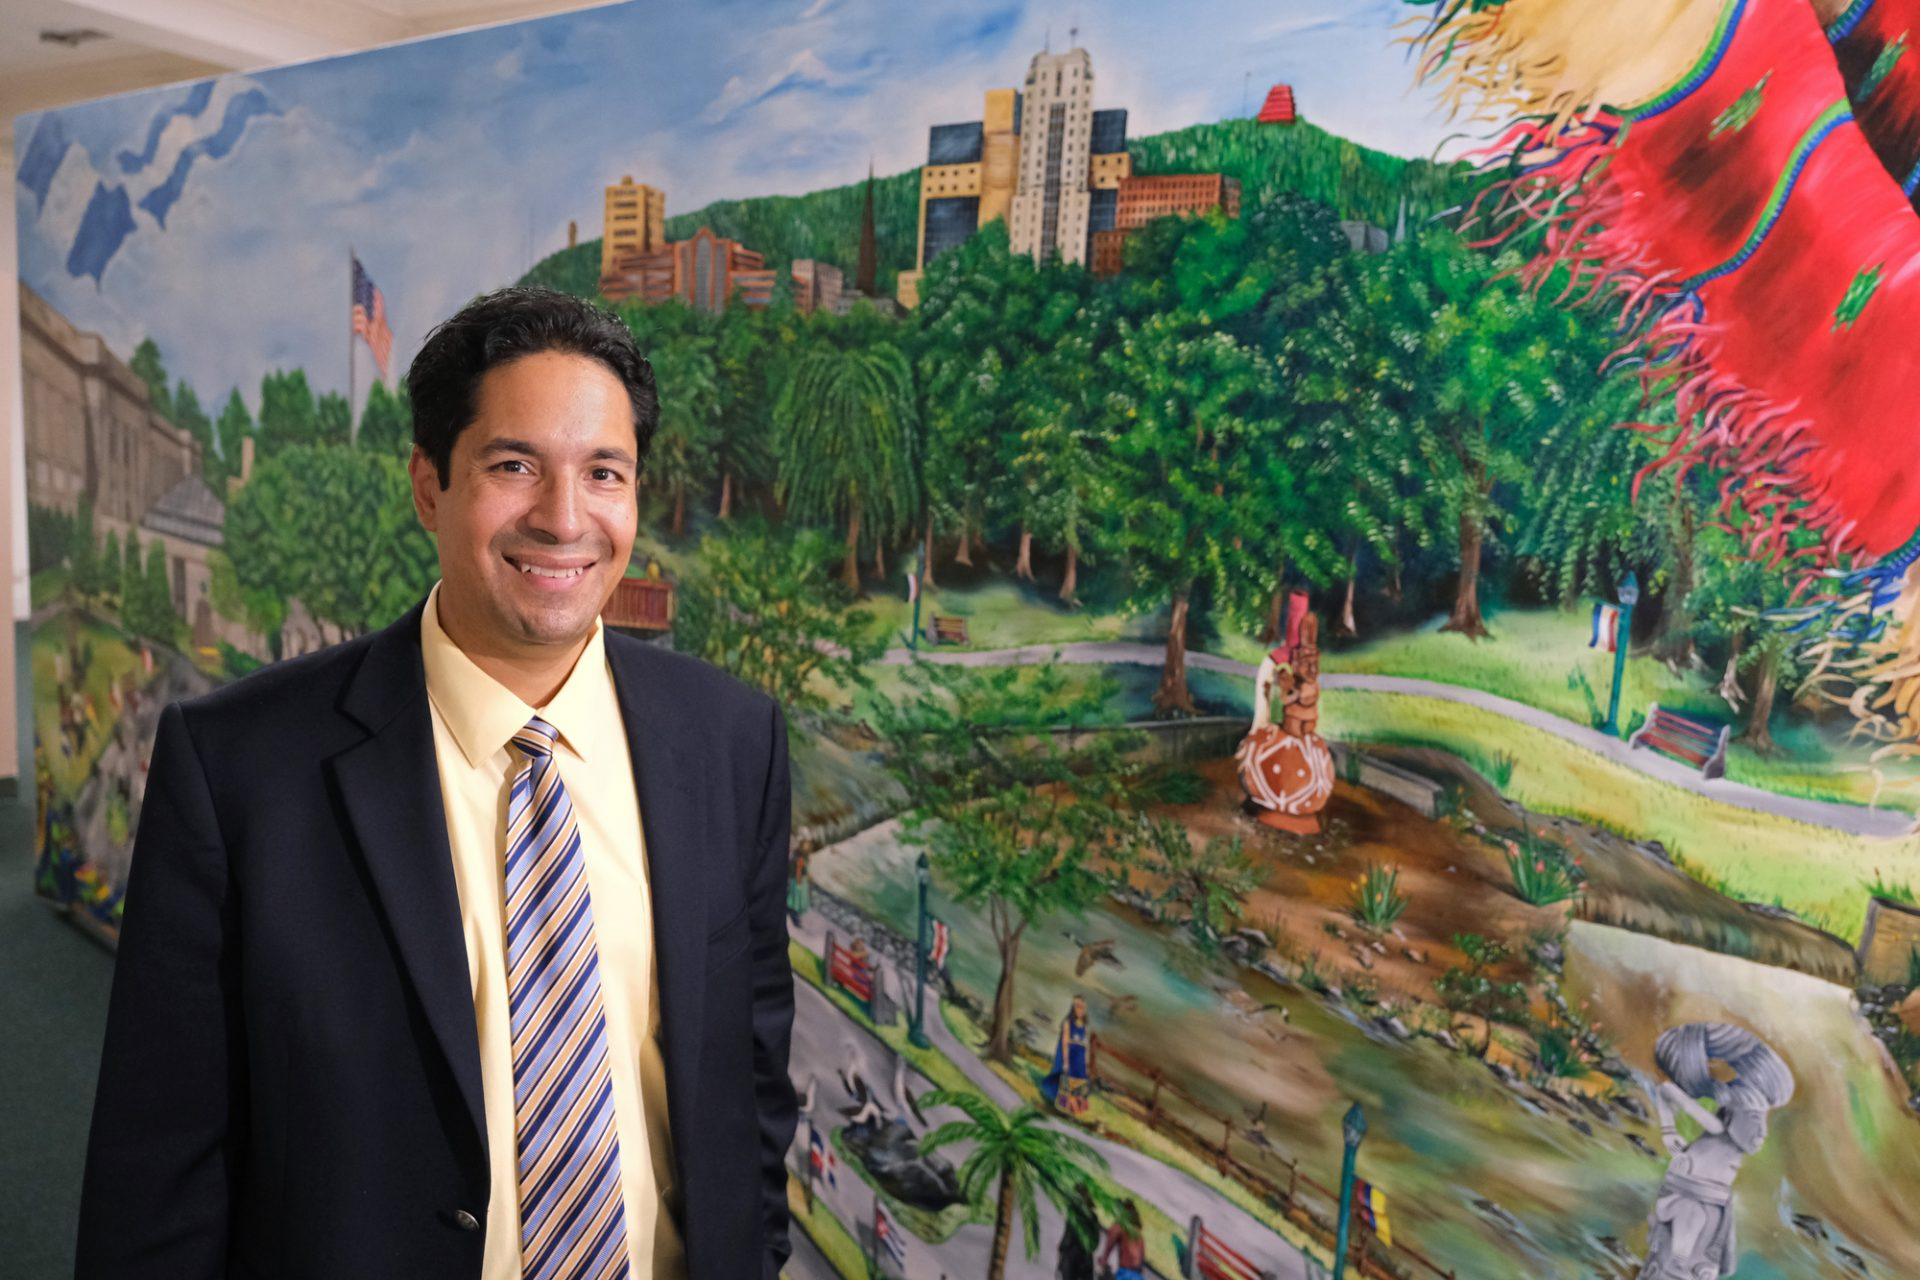 Centro Hispano Executive Director Mike Toledo stands near a mural of Reading on Oct. 31, 2019, while at the center on 5th Street in Reading, Pennsylvania.